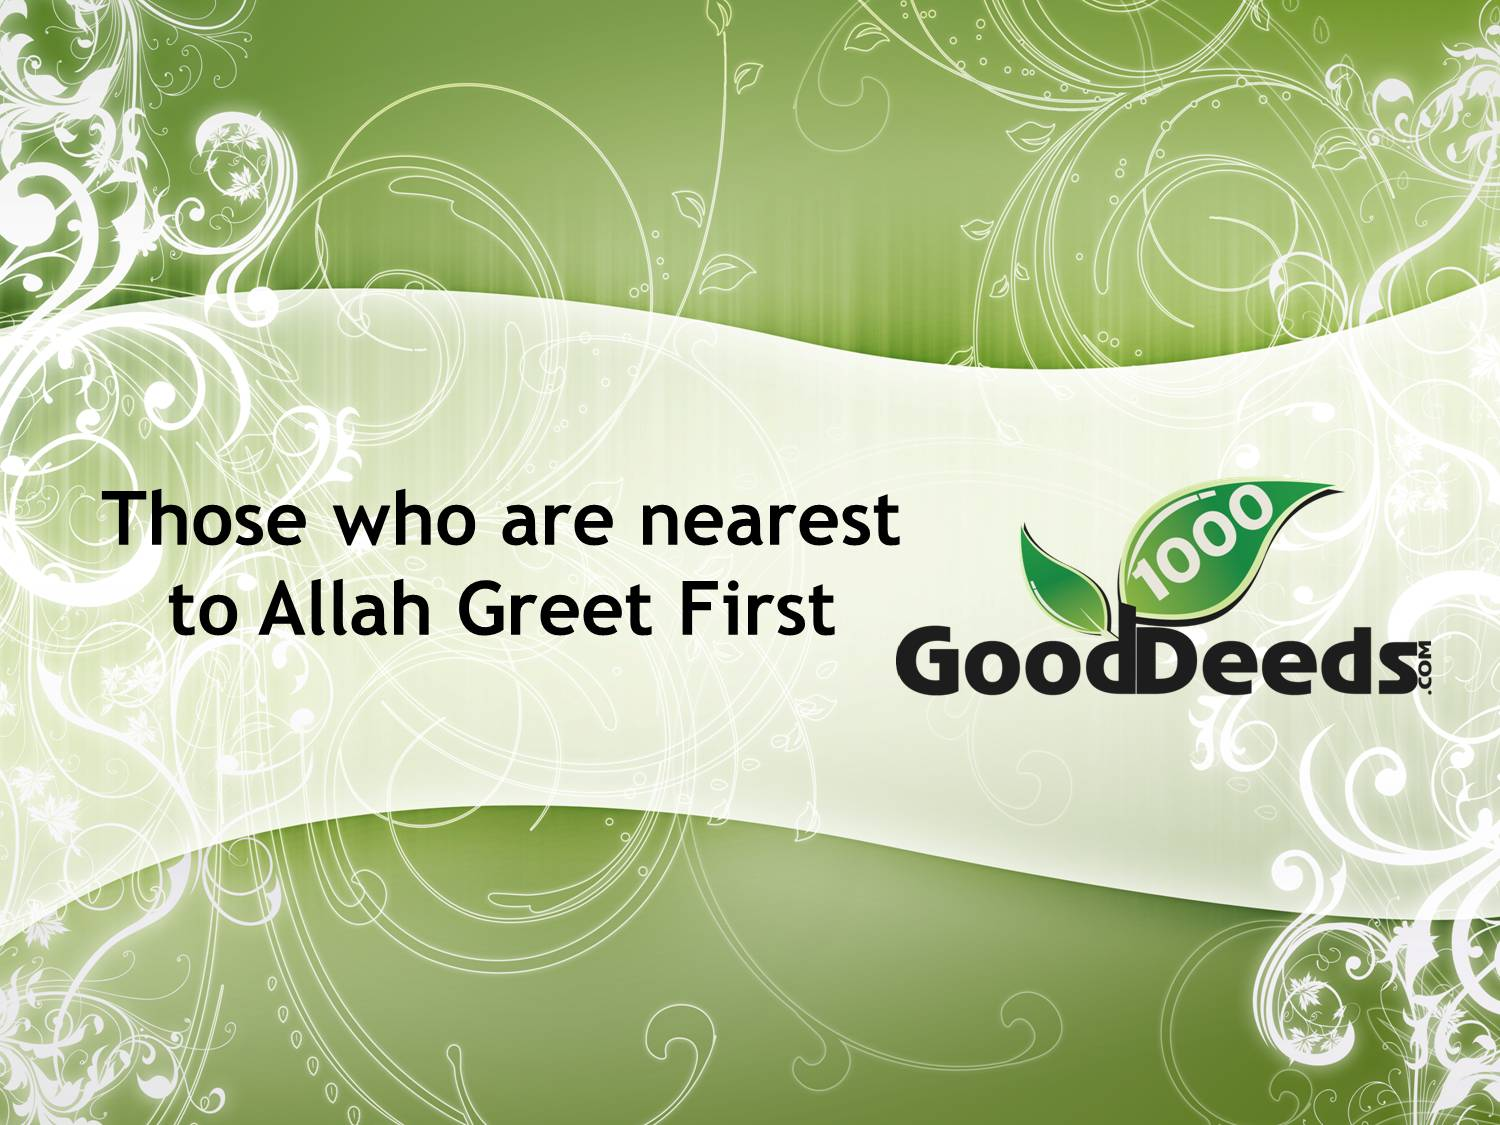 Good deed 2 greet one another 1000 good deeds good deed 2 greet one another m4hsunfo